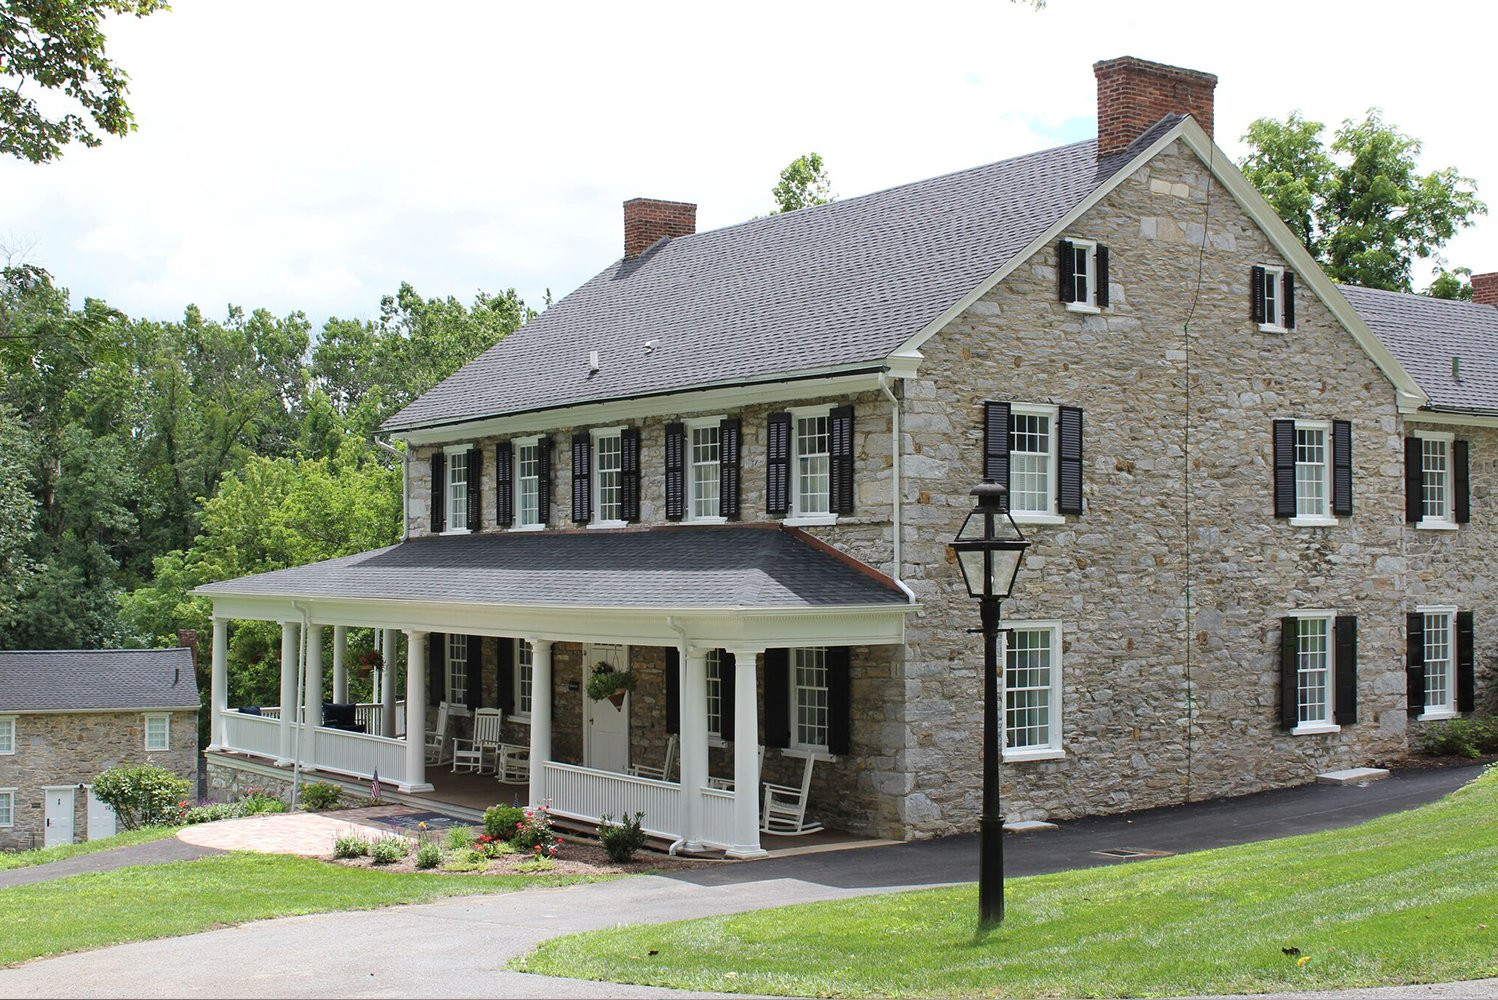 The redesign drew influences from the property's location along the Appalachian Trail and Yellow Breeches Creek.